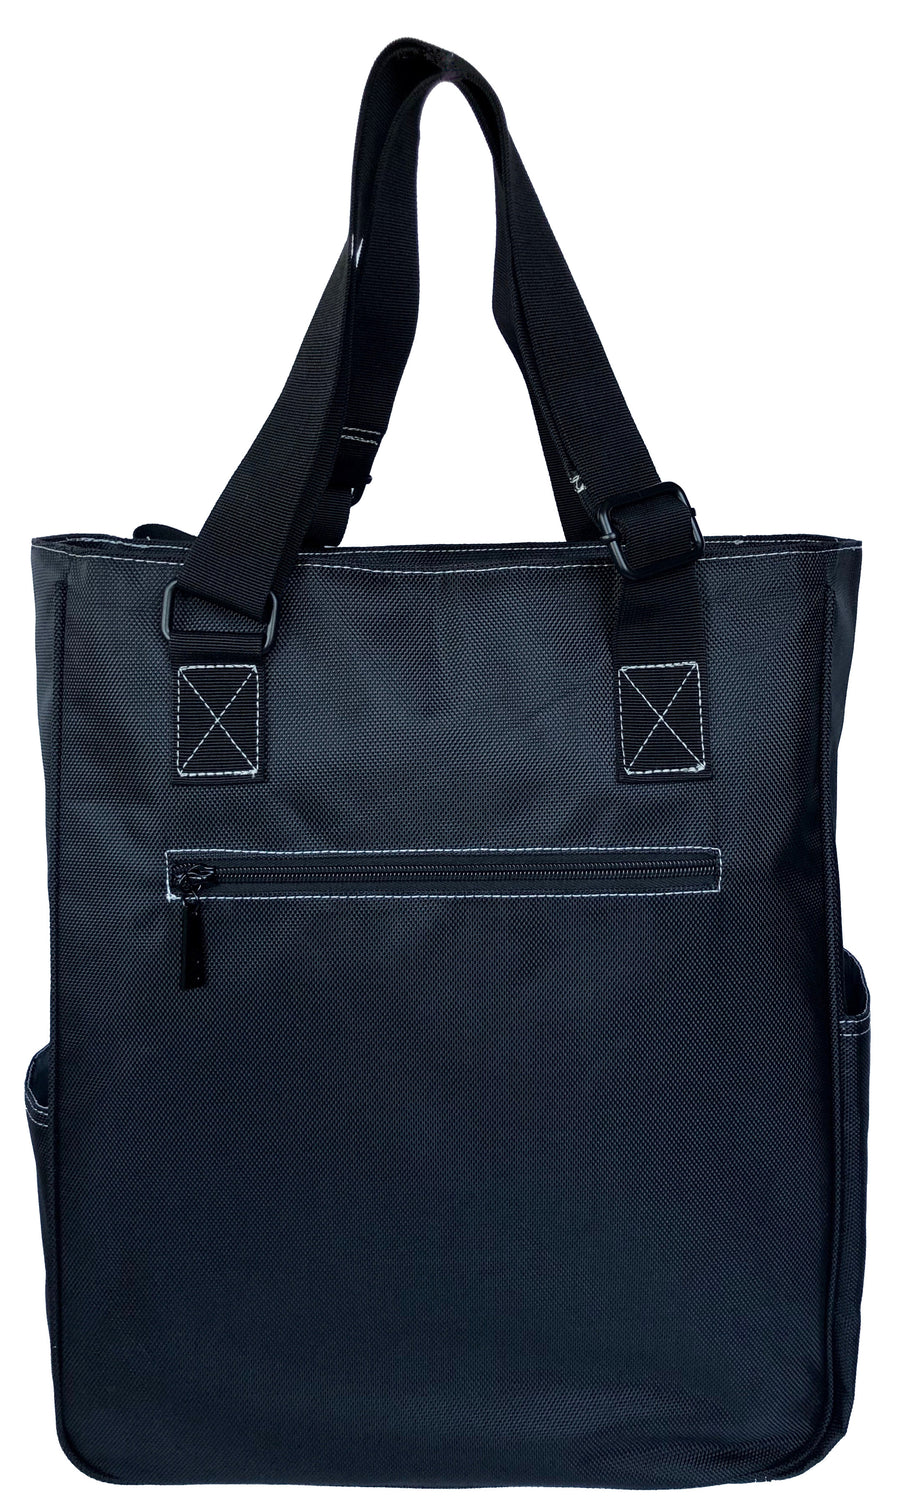 Tennis Tote in Black